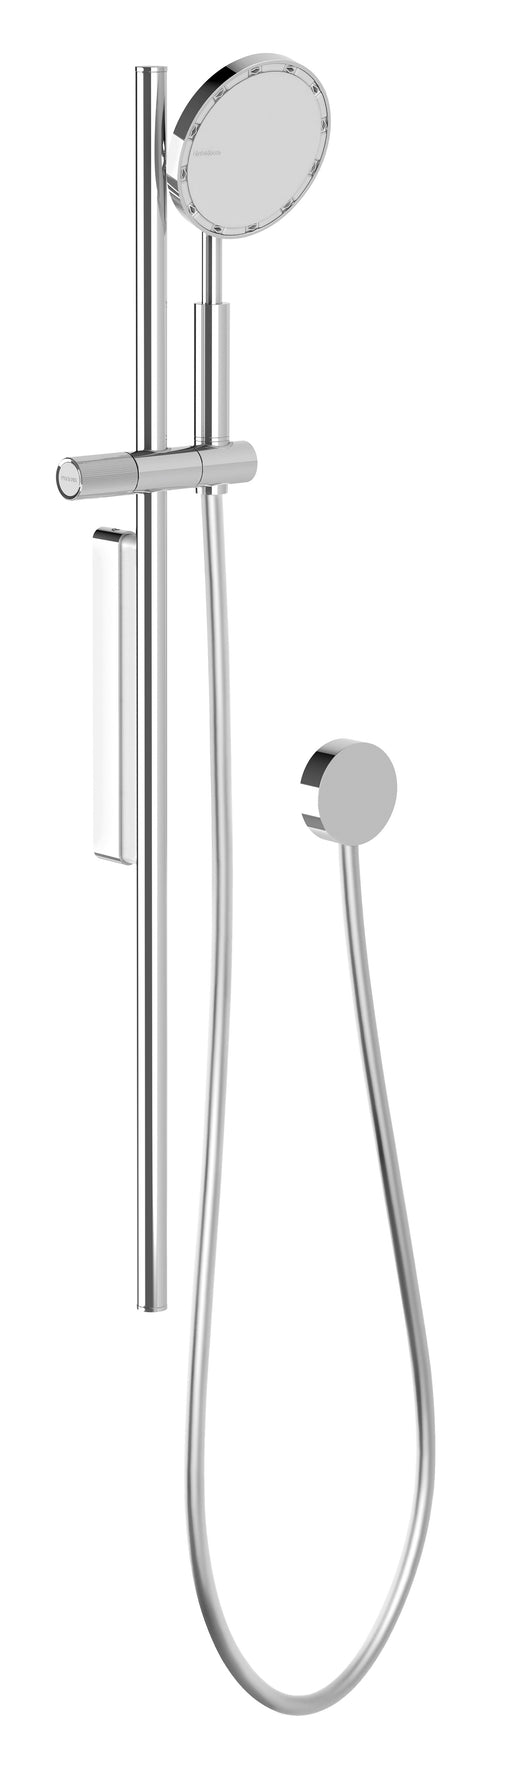 NX Iko Rail Shower